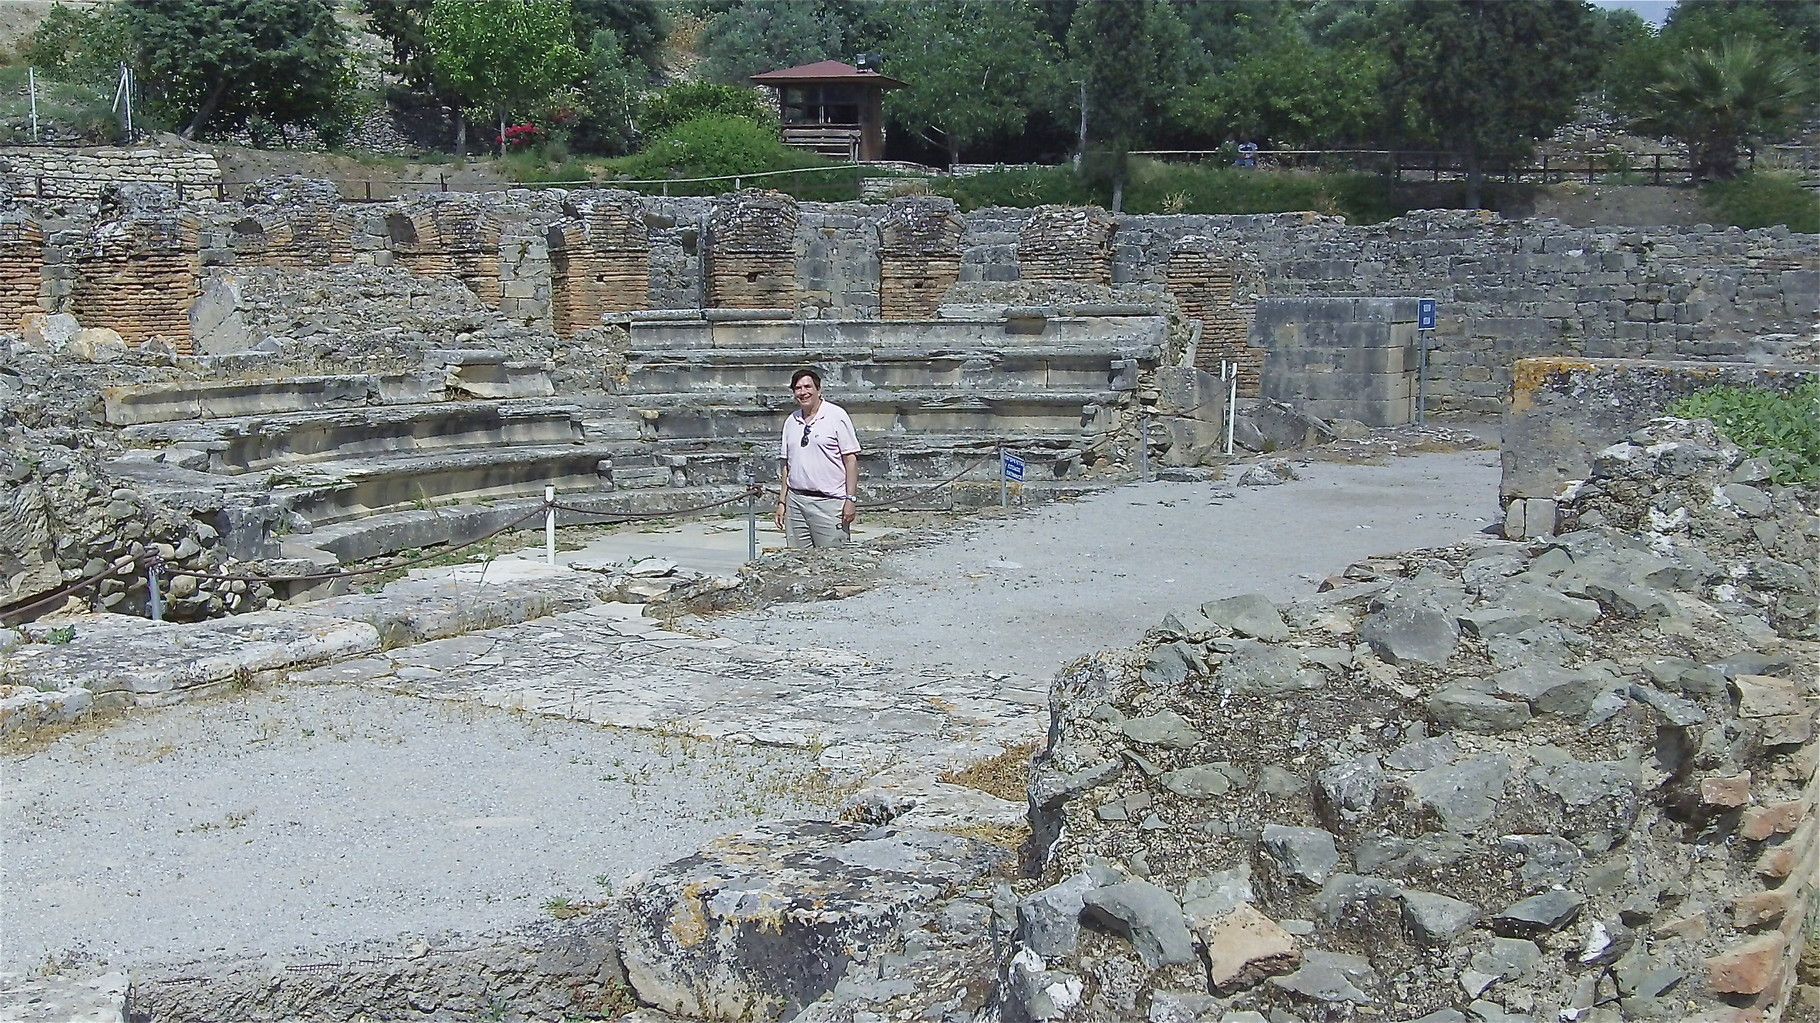 Roman ruins at Gortyna, Crete, John stands in the Odeon built by Roman emperor Trajan